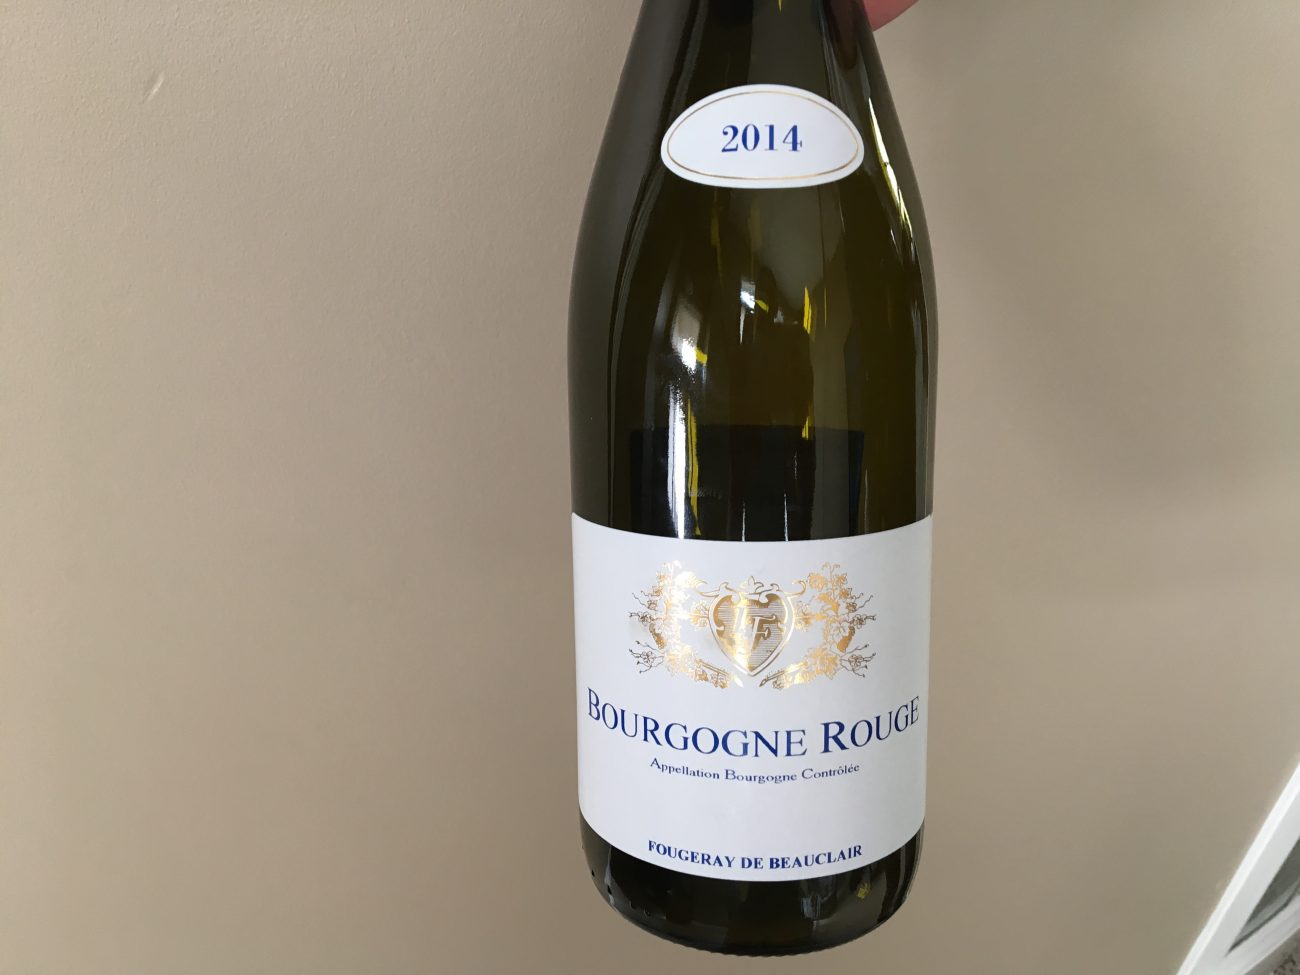 Fougeray de Beauclair – Bourgogne Rouge – 2014 (Zyn)